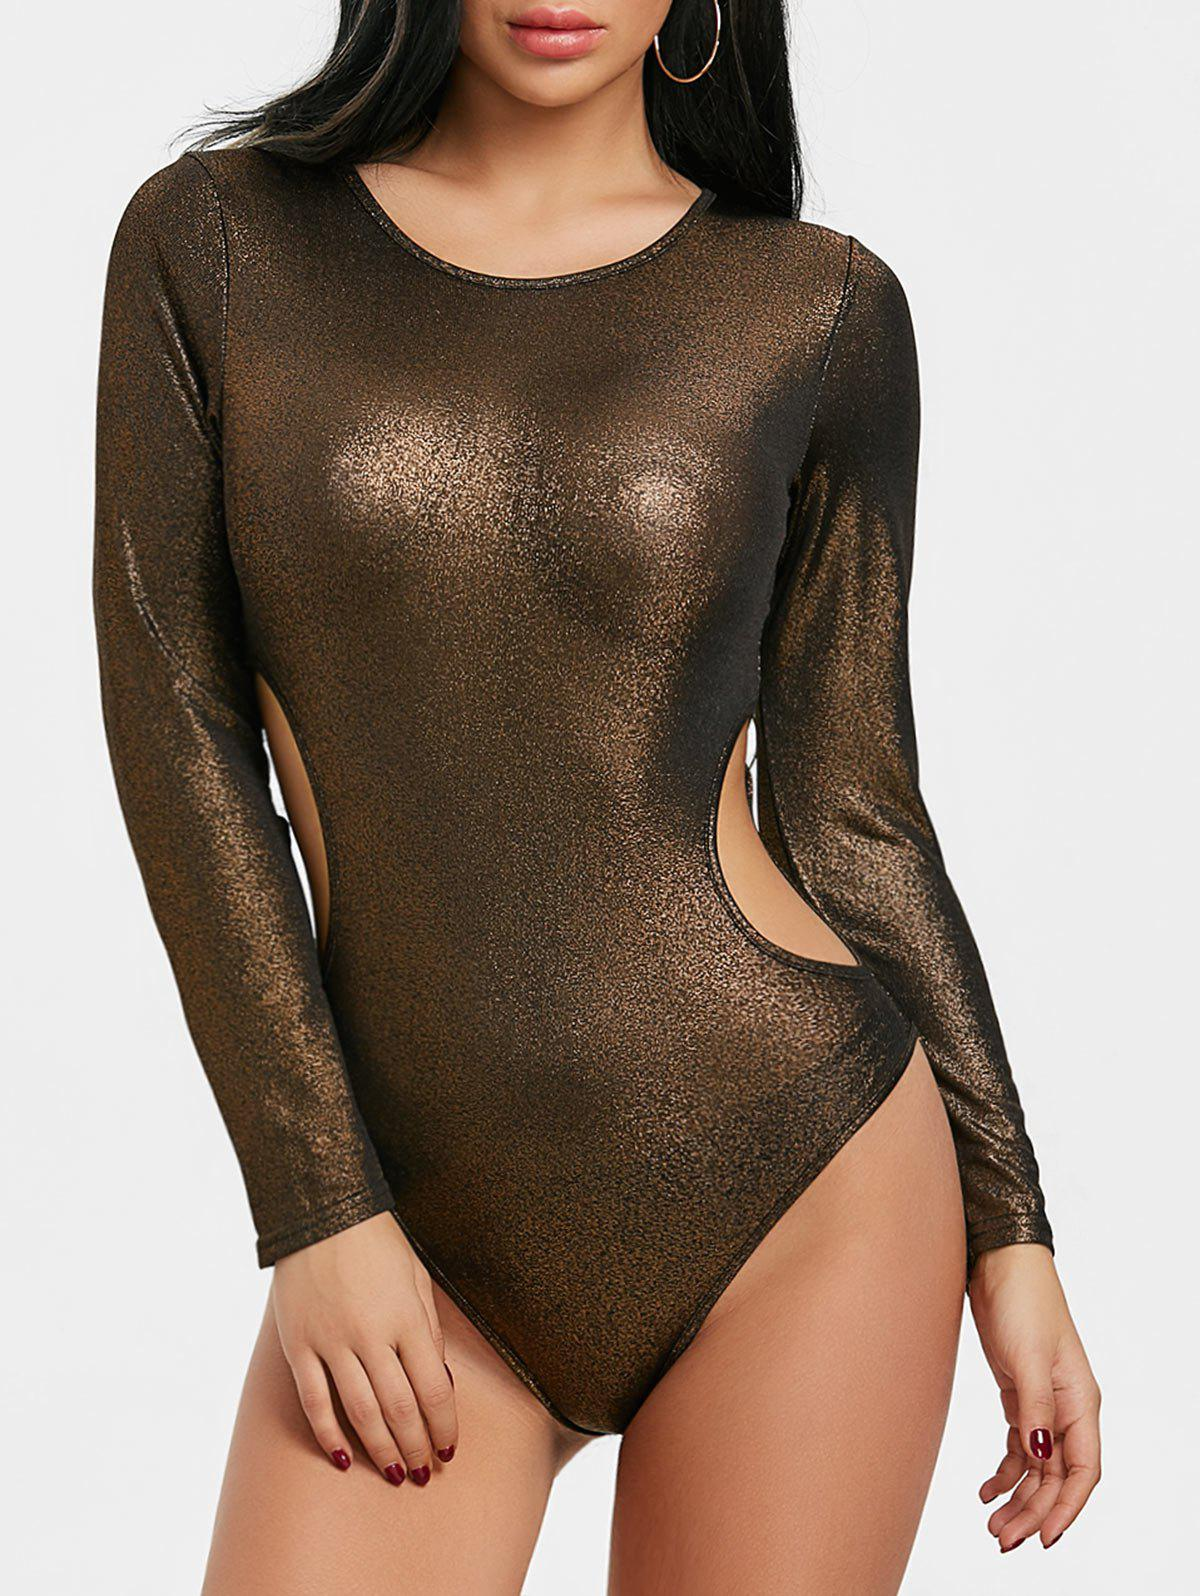 Hot Long Sleeve Cut Out Metallic Bodysuit